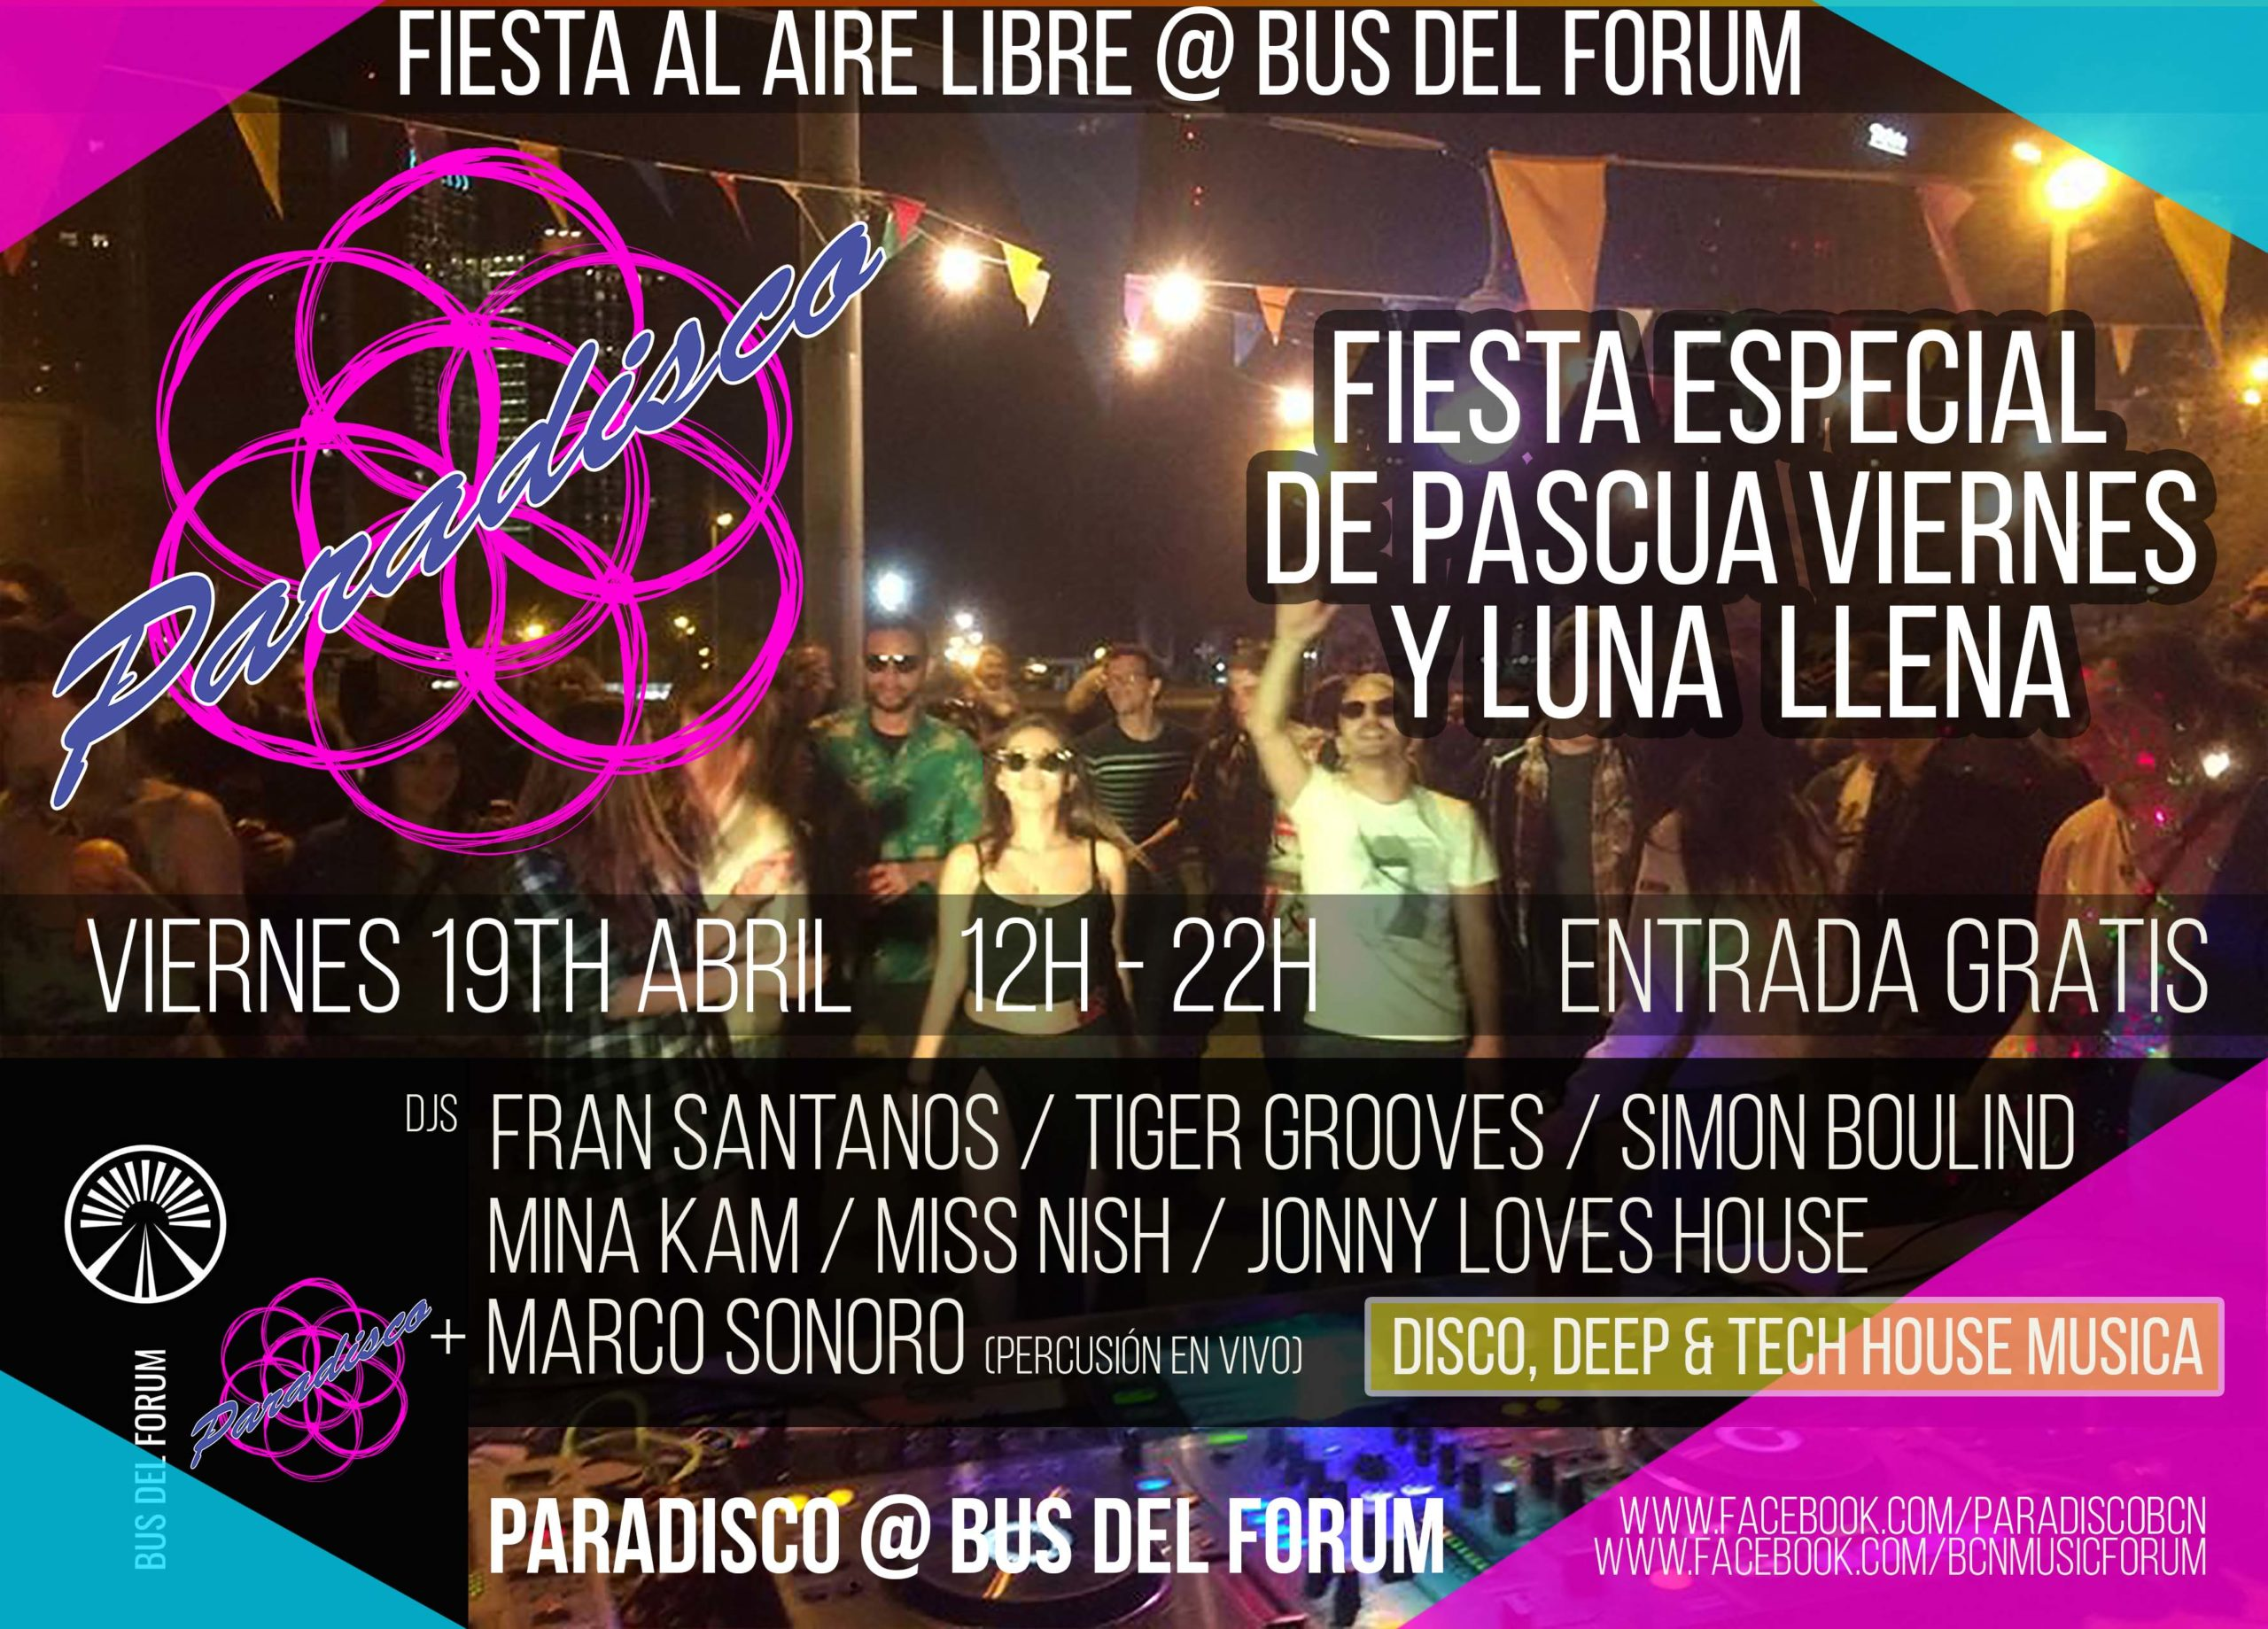 Paradisco @ Bus Del Forum Barcelona